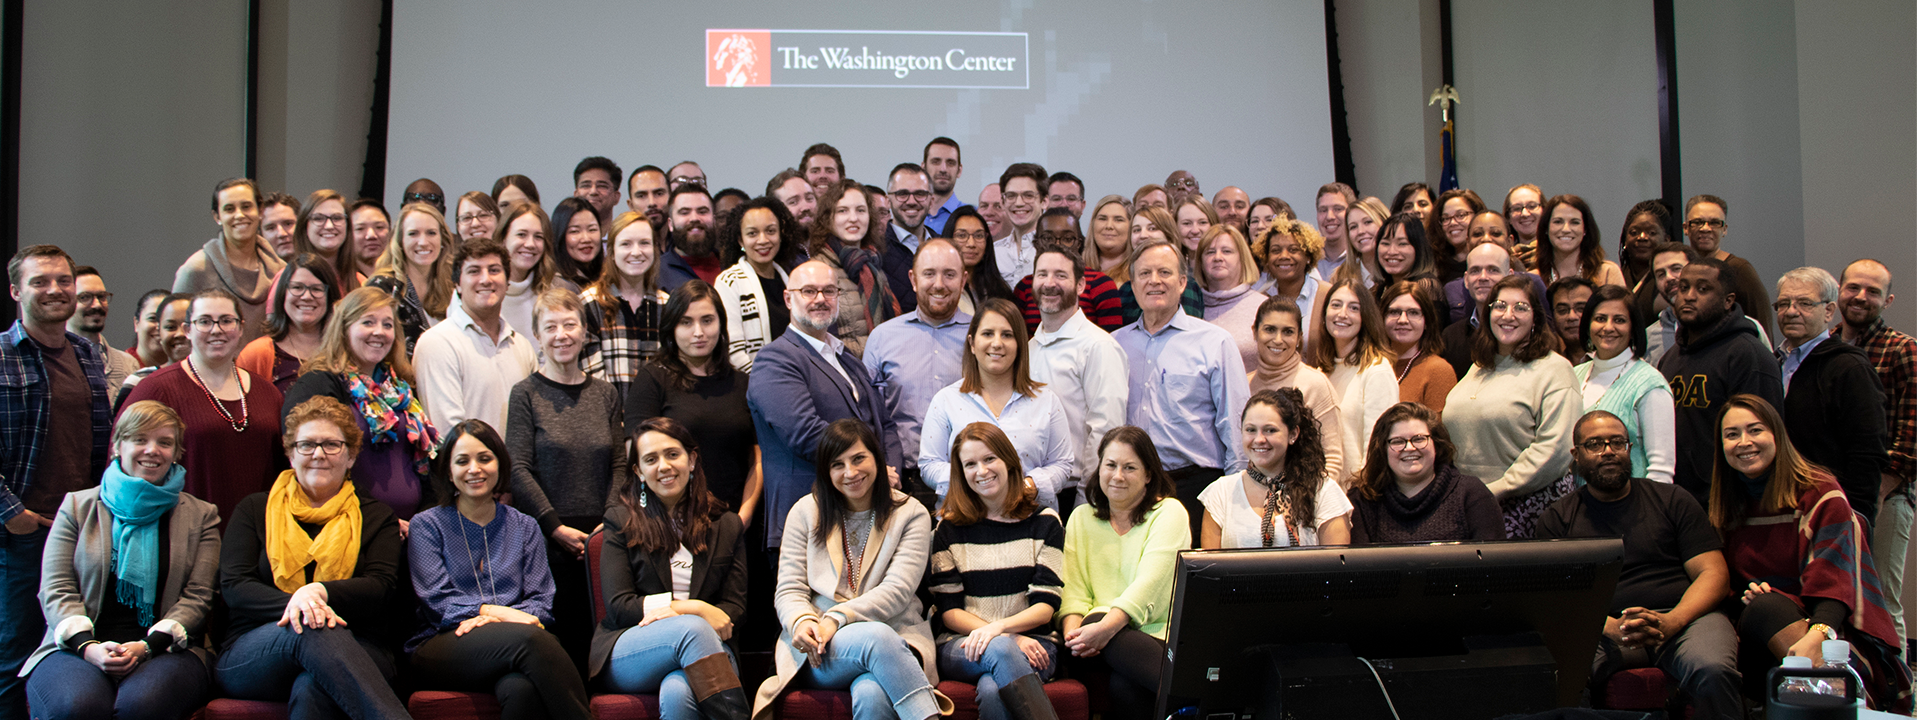 The Washington Center Staff